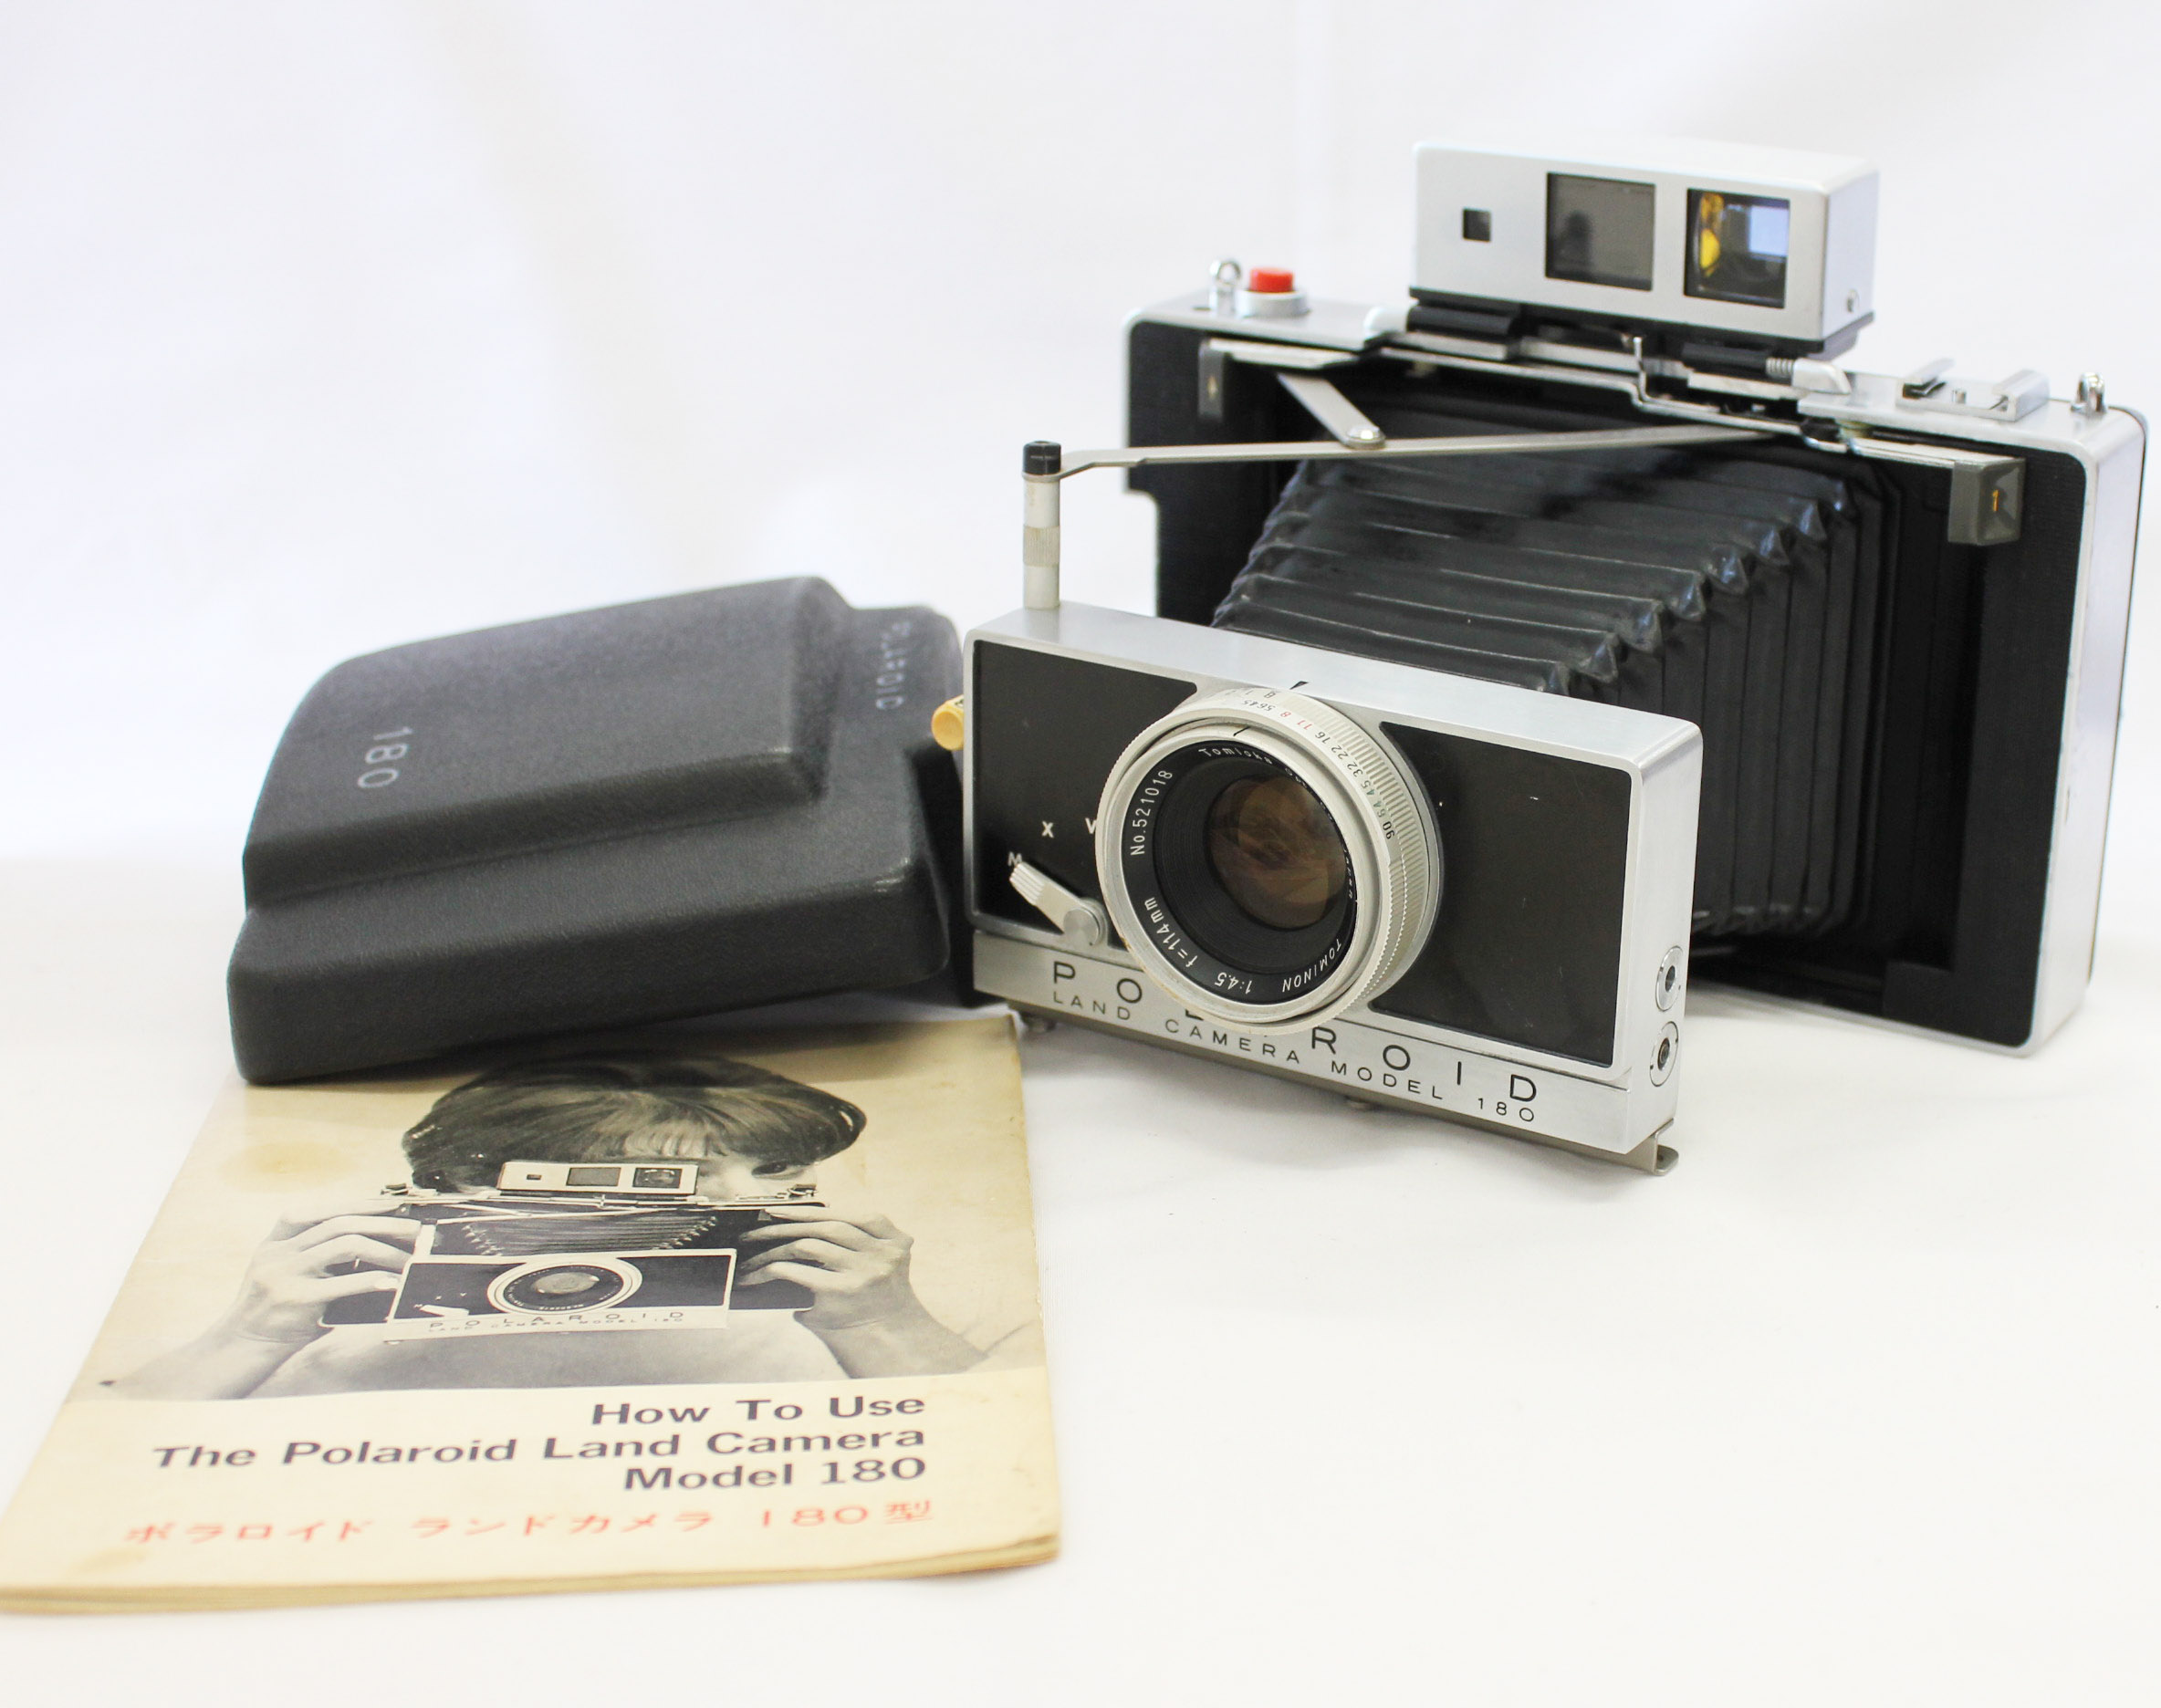 Japan Used Camera Shop | [Excellent+++++] Polaroid Land Camera Model 180 Instant Film Camera w/ Tominon 114mm F/4.5 from Japan